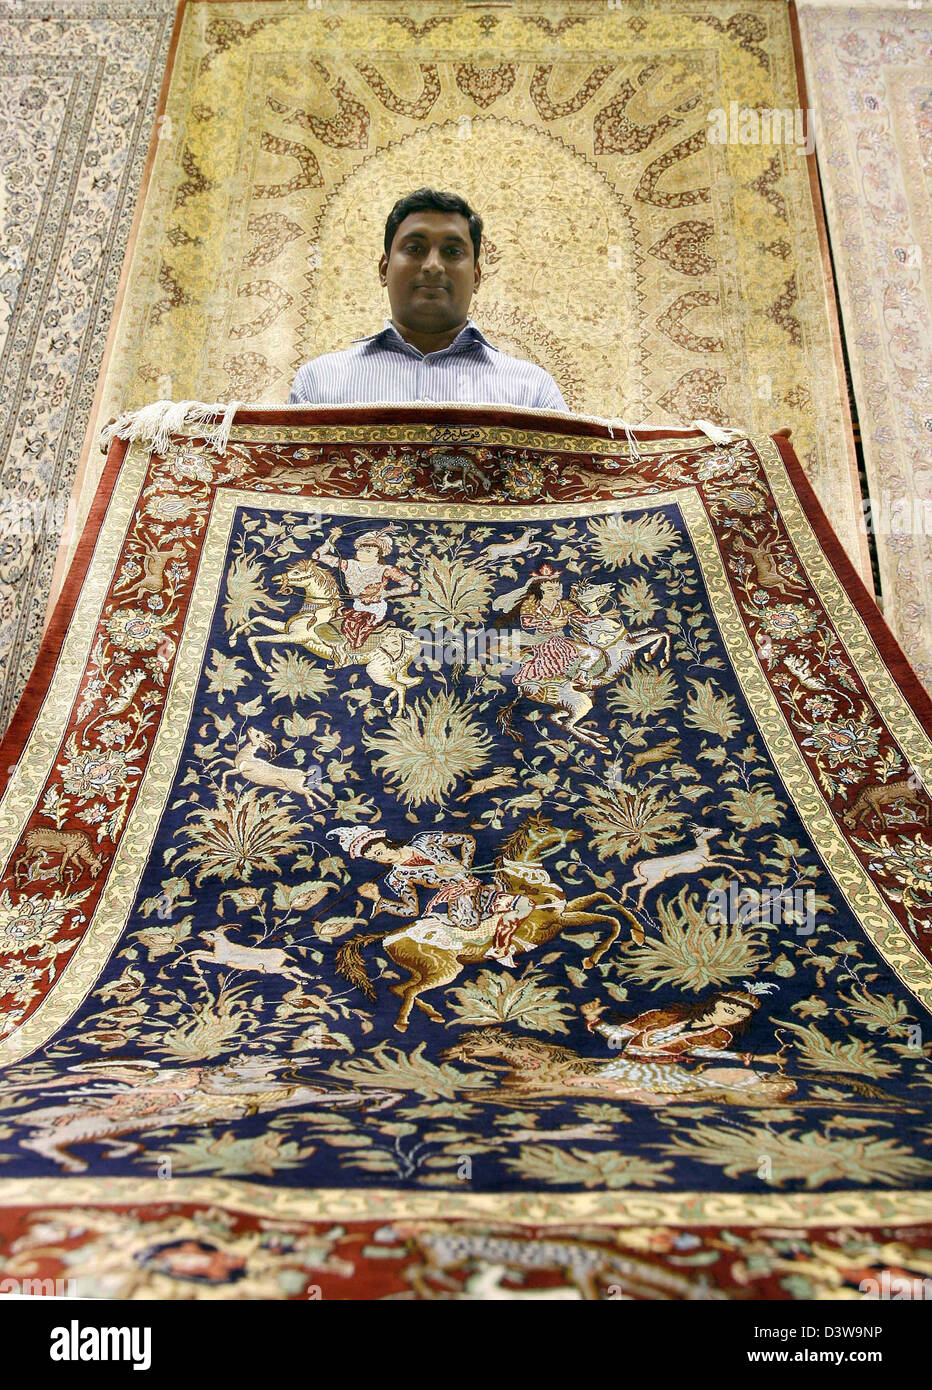 Mosharraf, the owner of 'Persian Carpet House', shows a carpet from his wide variety in his carpet shop at the Madinat Jumeirah Shopping-Center in Dubai, ...